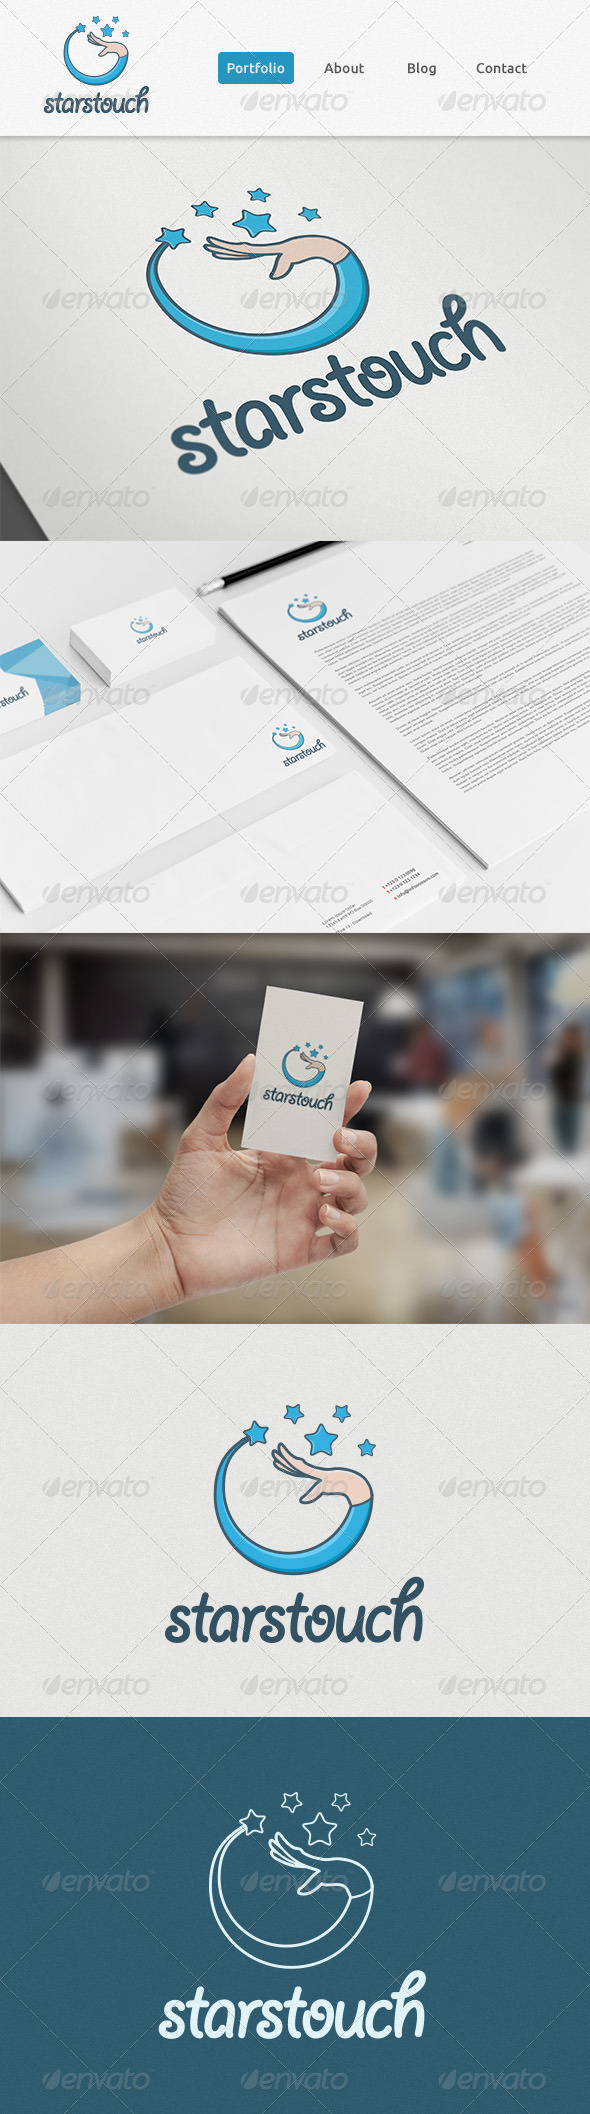 GraphicRiver StarsTouch Logo 6537223